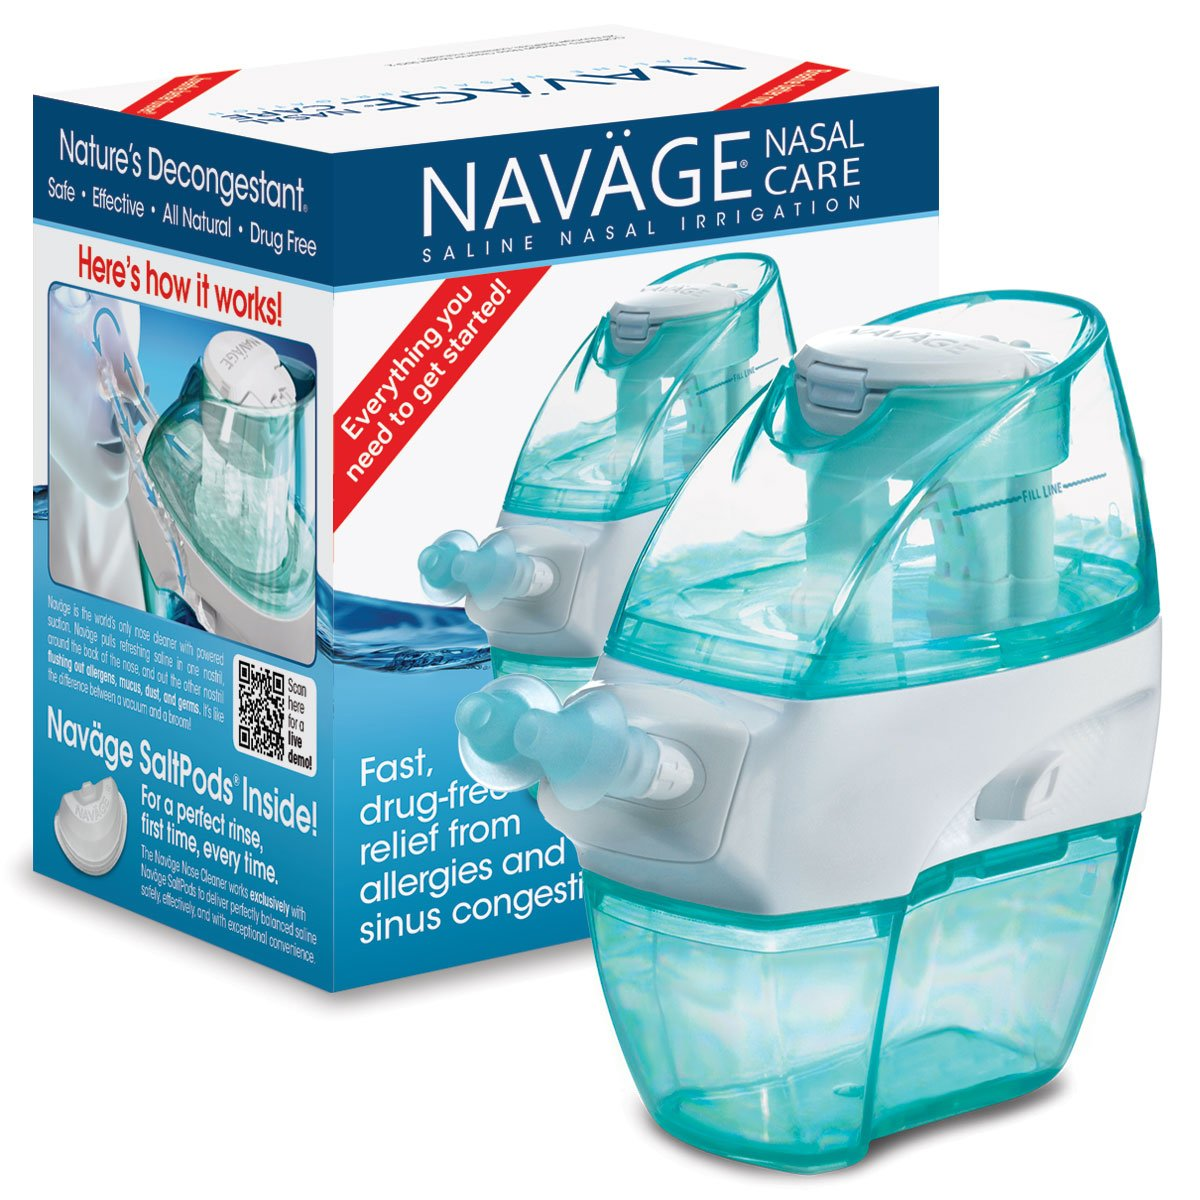 Amazon.com: Navage Nasal Irrigation Starter Bundle: Naväge Nose ...